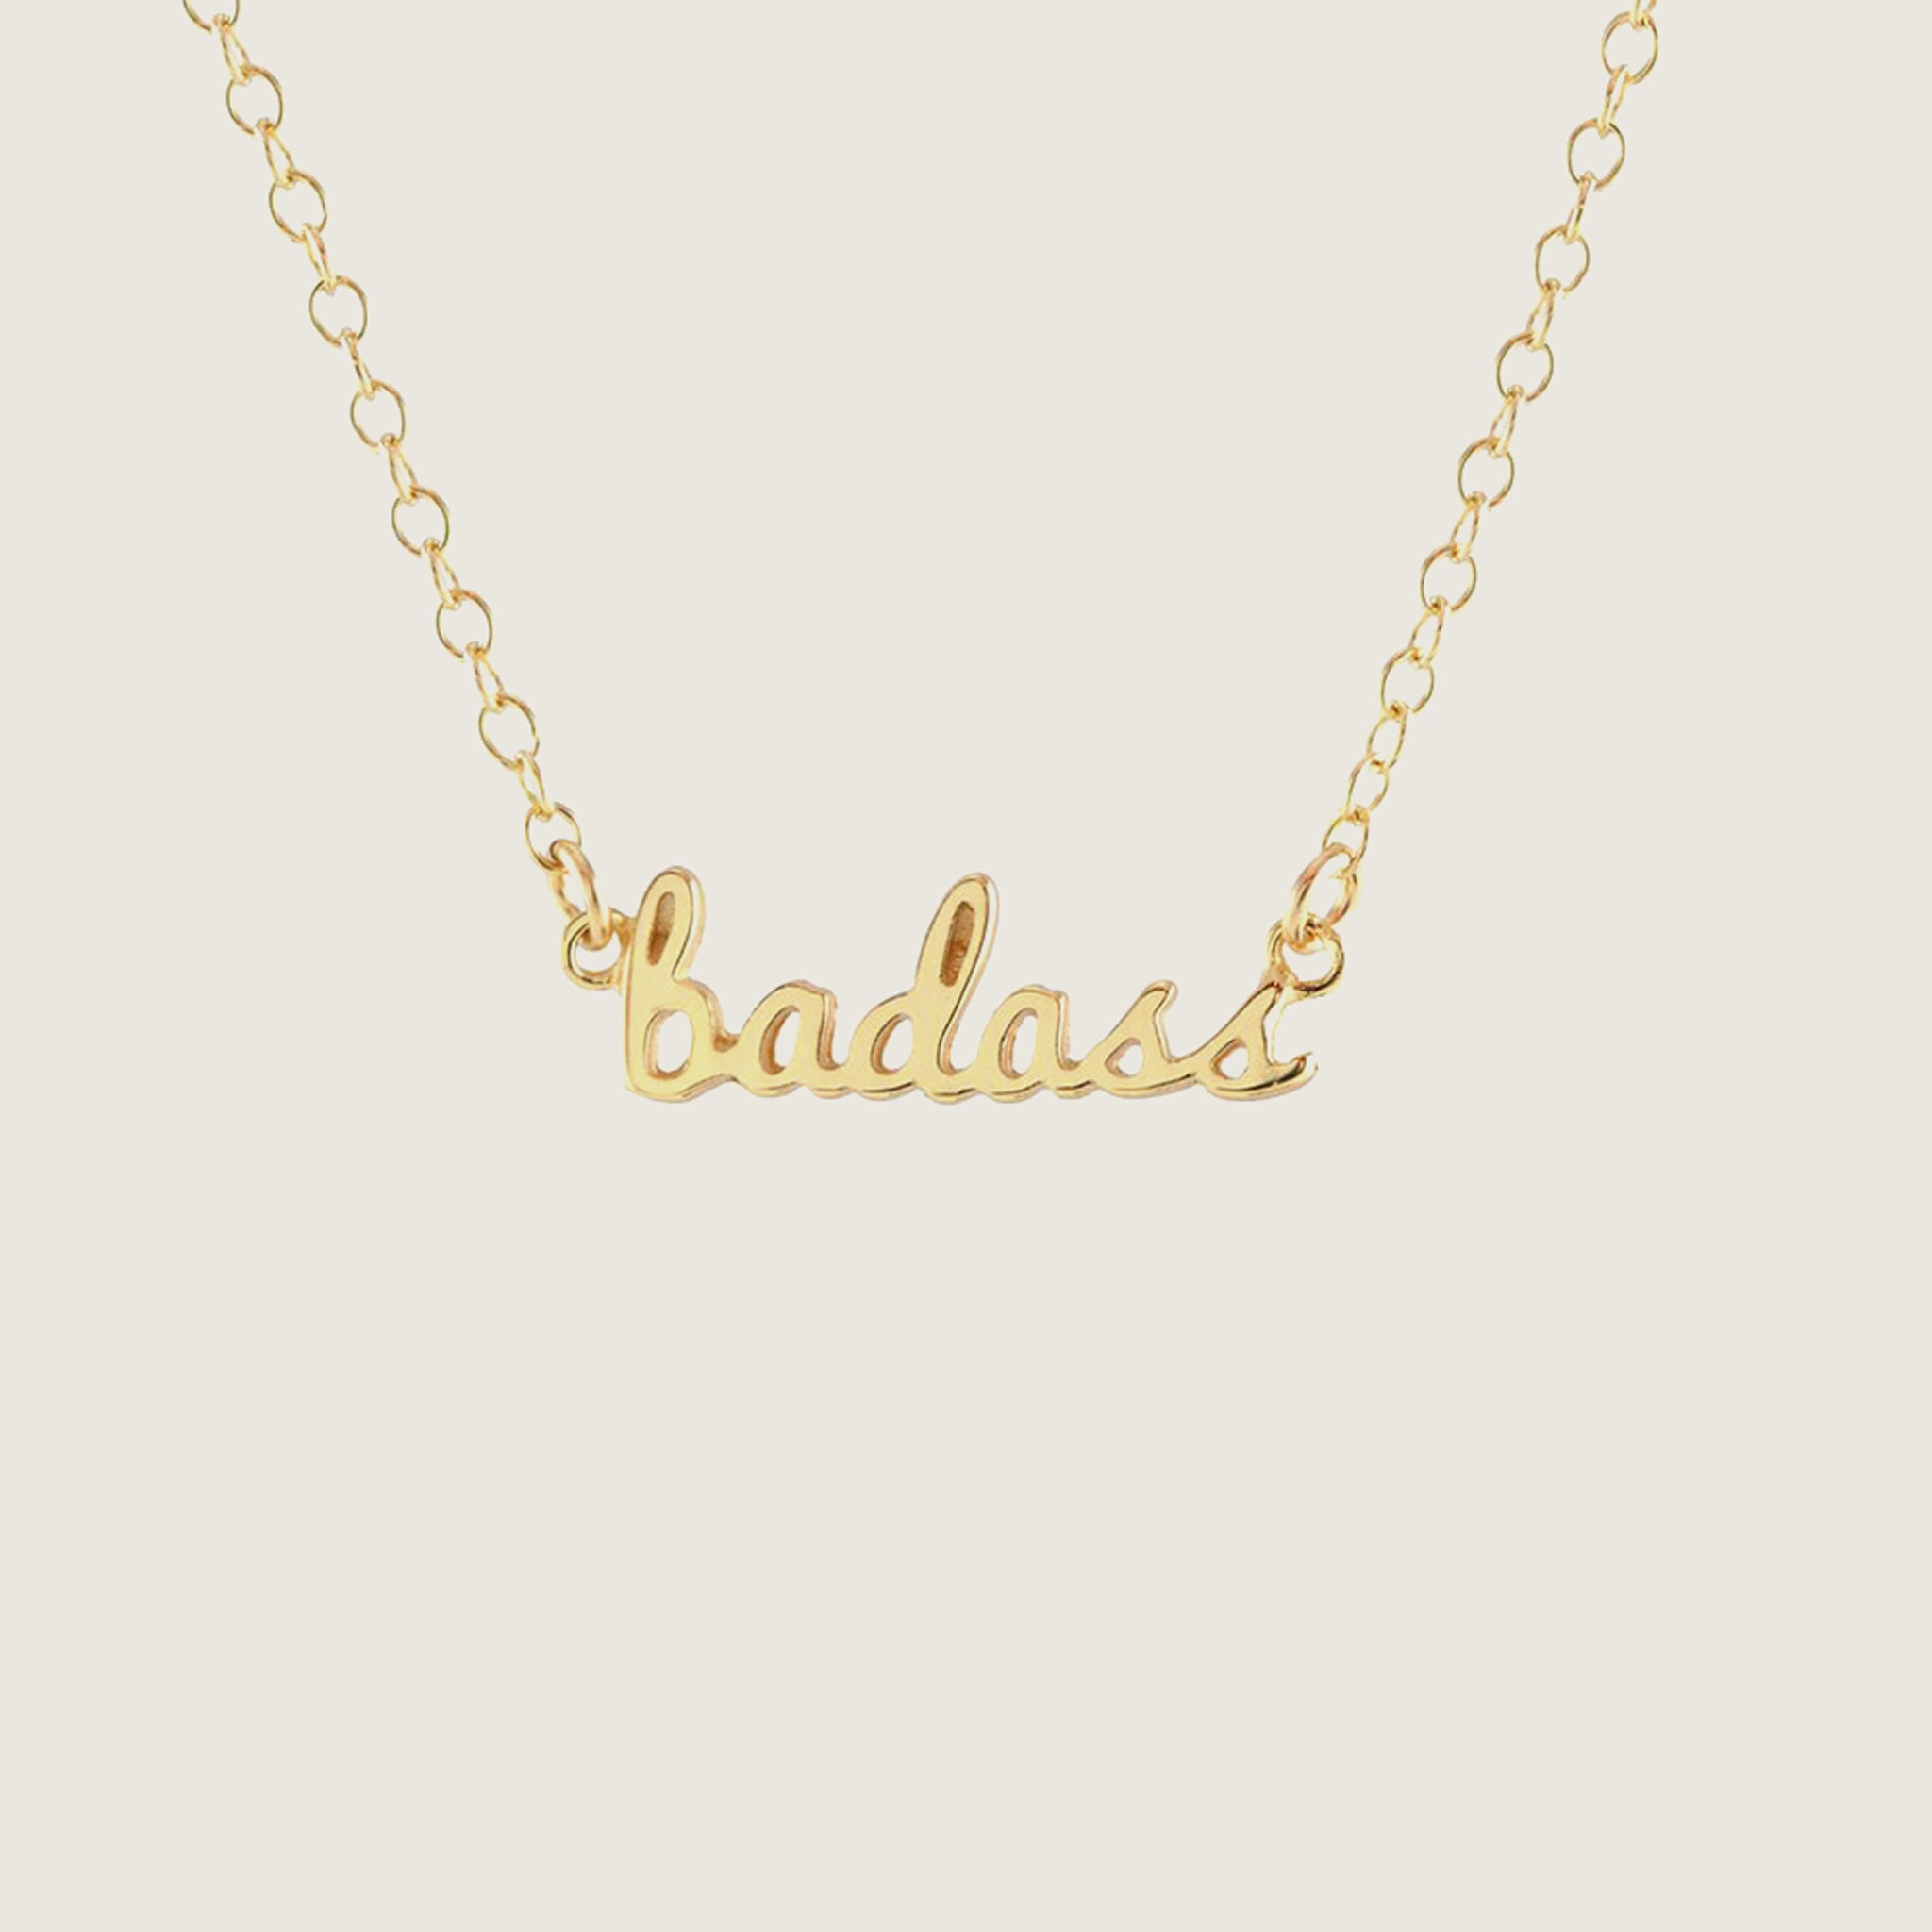 Badass Charm Necklace - Blackbird General Store